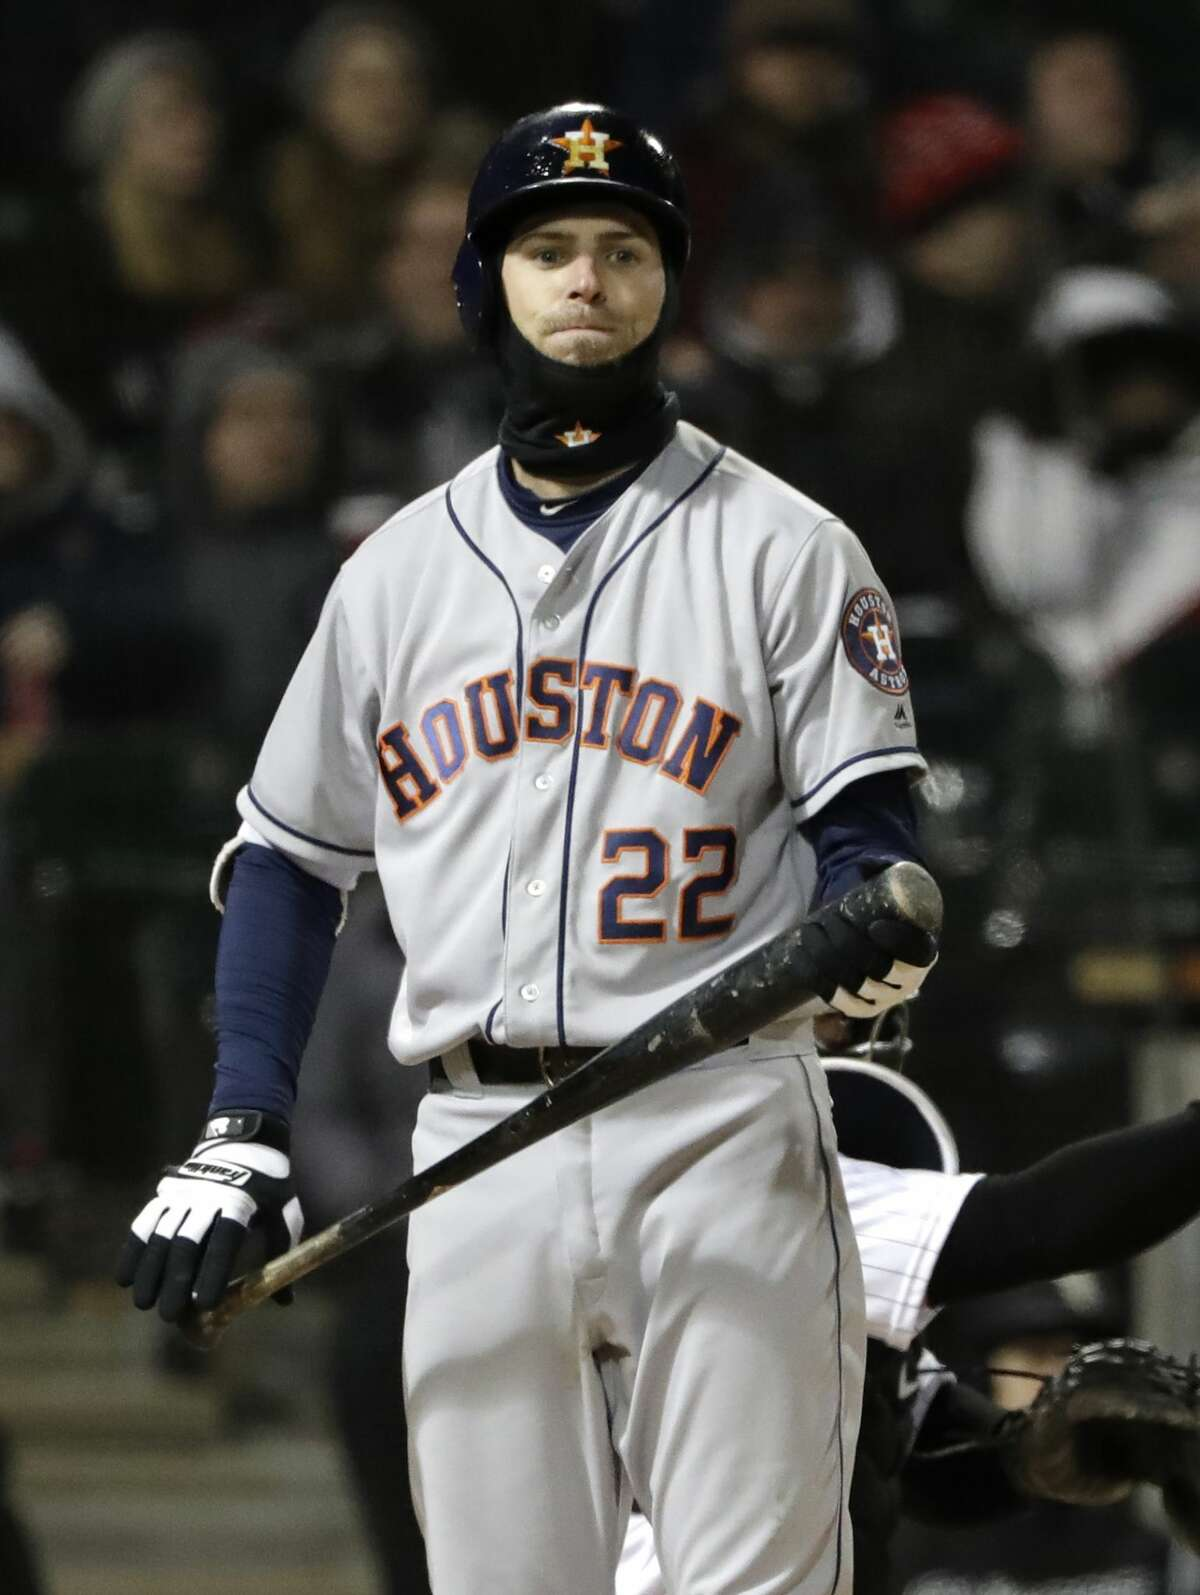 Houston Astros' Josh Reddick reacts after being called out on strikes during the sixth inning of a baseball game against the Chicago White Sox, Saturday, April 21, 2018, in Chicago. (AP Photo/Nam Y. Huh)